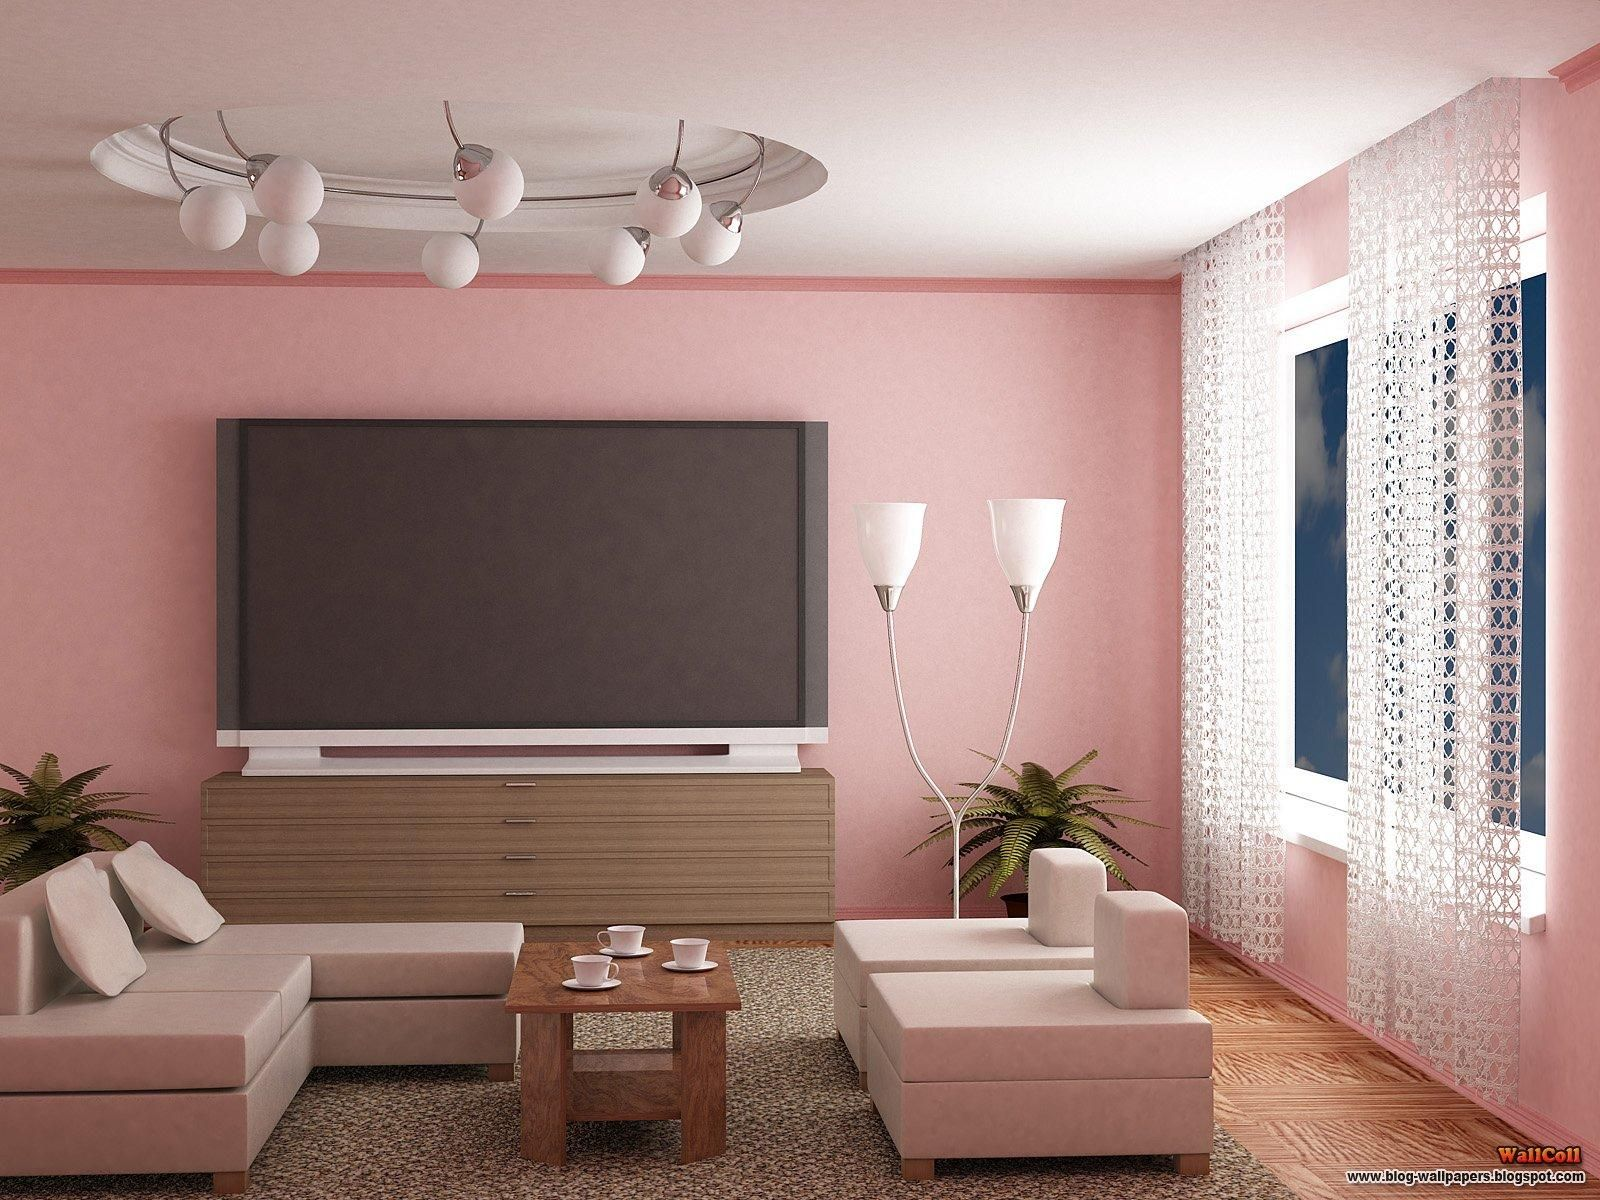 Rooms Colors Cute Living Room Paint Idea In Chic Pinky Theme With Pink Wall